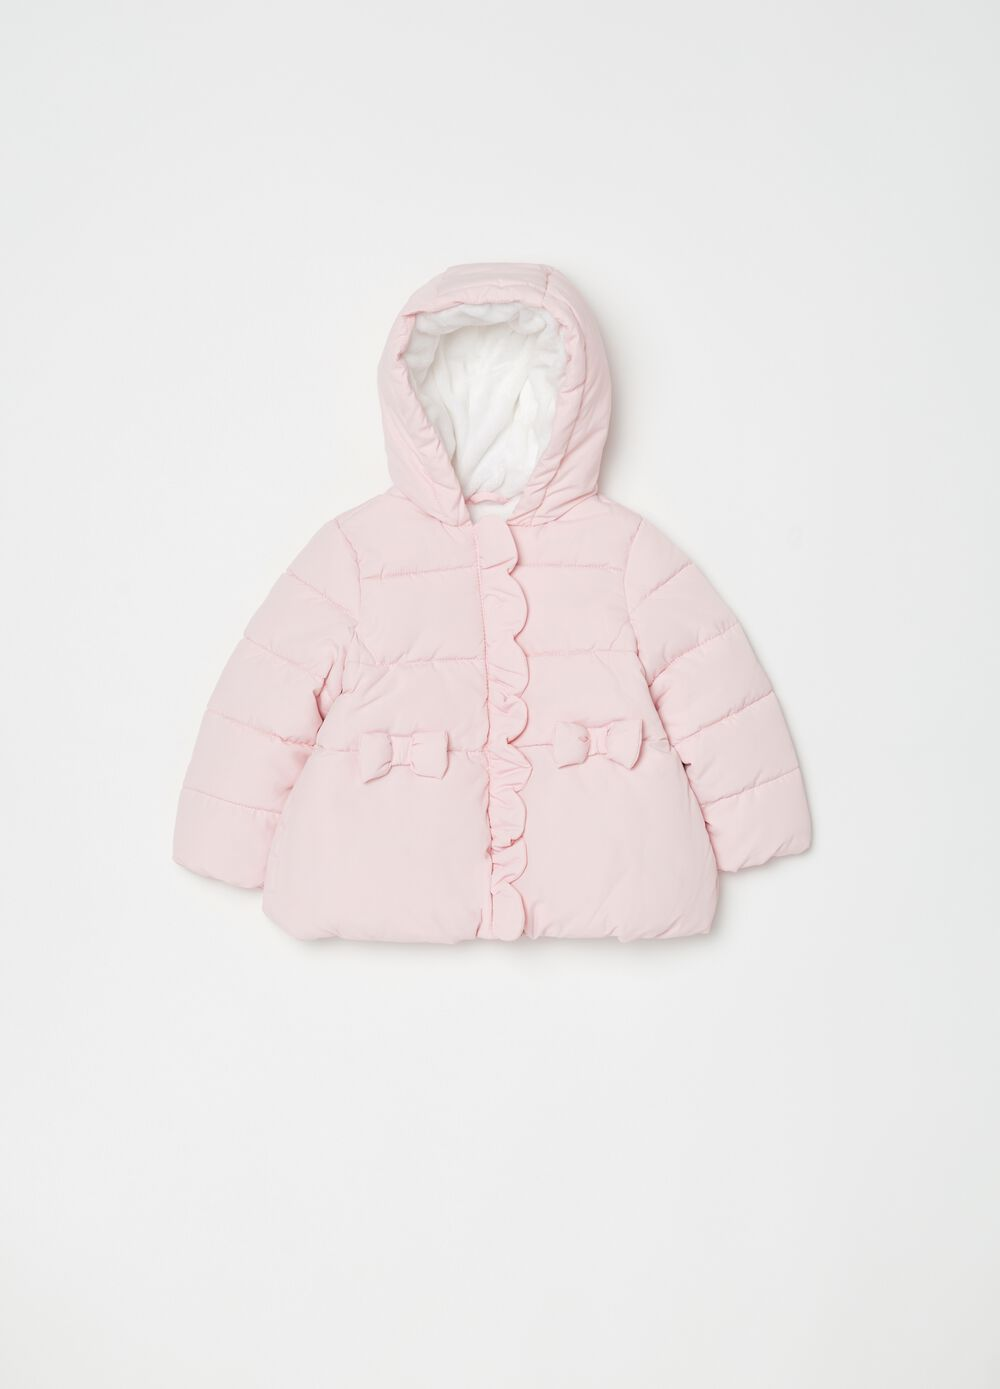 Padded jacket with bows